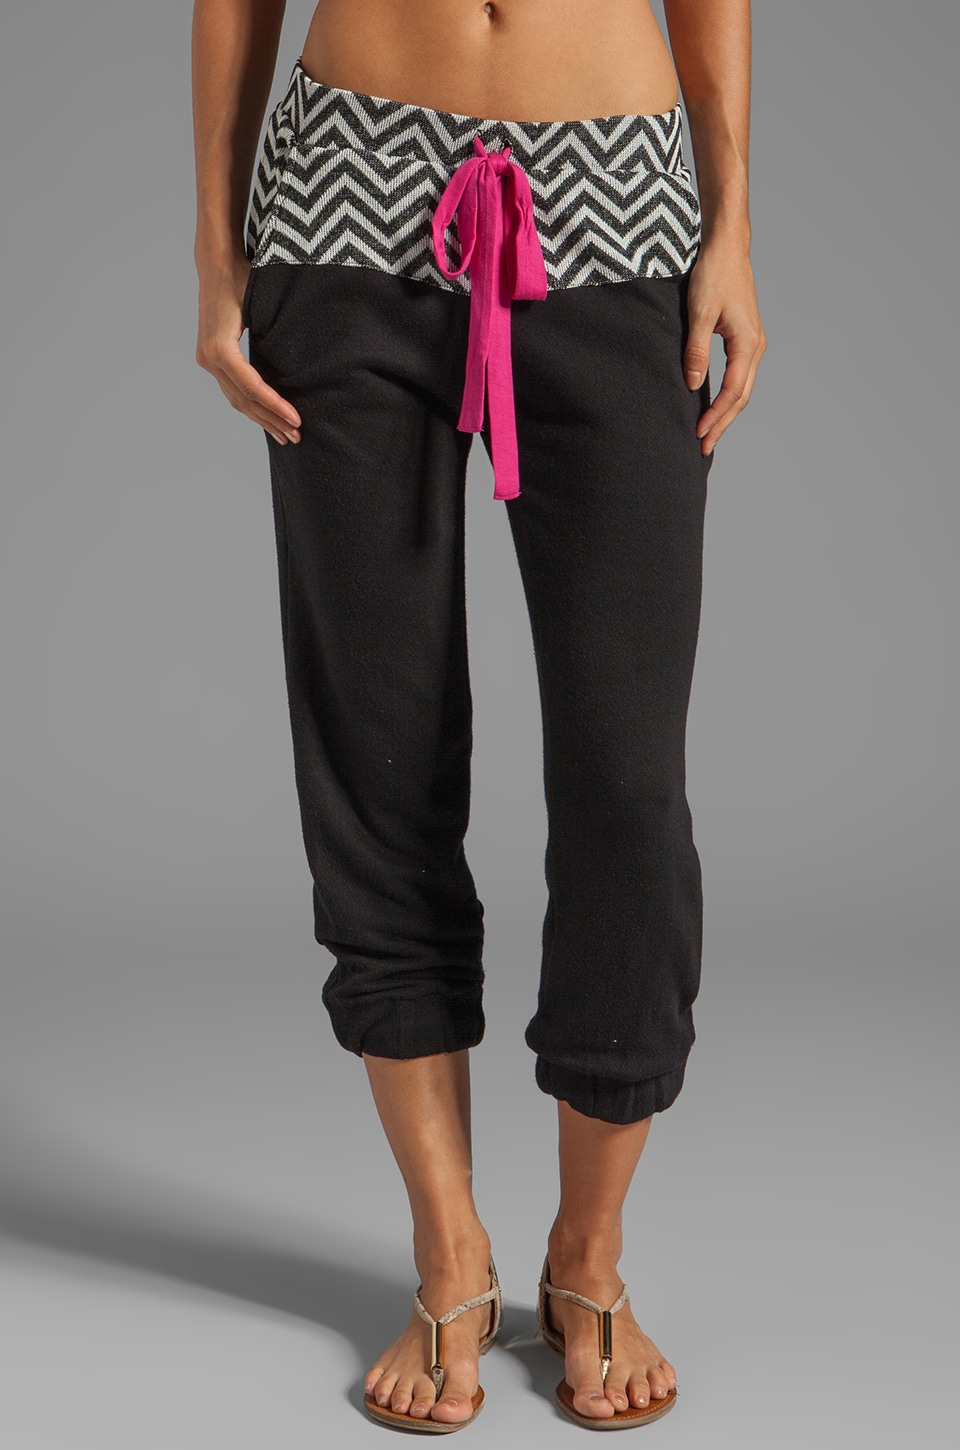 WOODLEIGH Anja Pants in Black